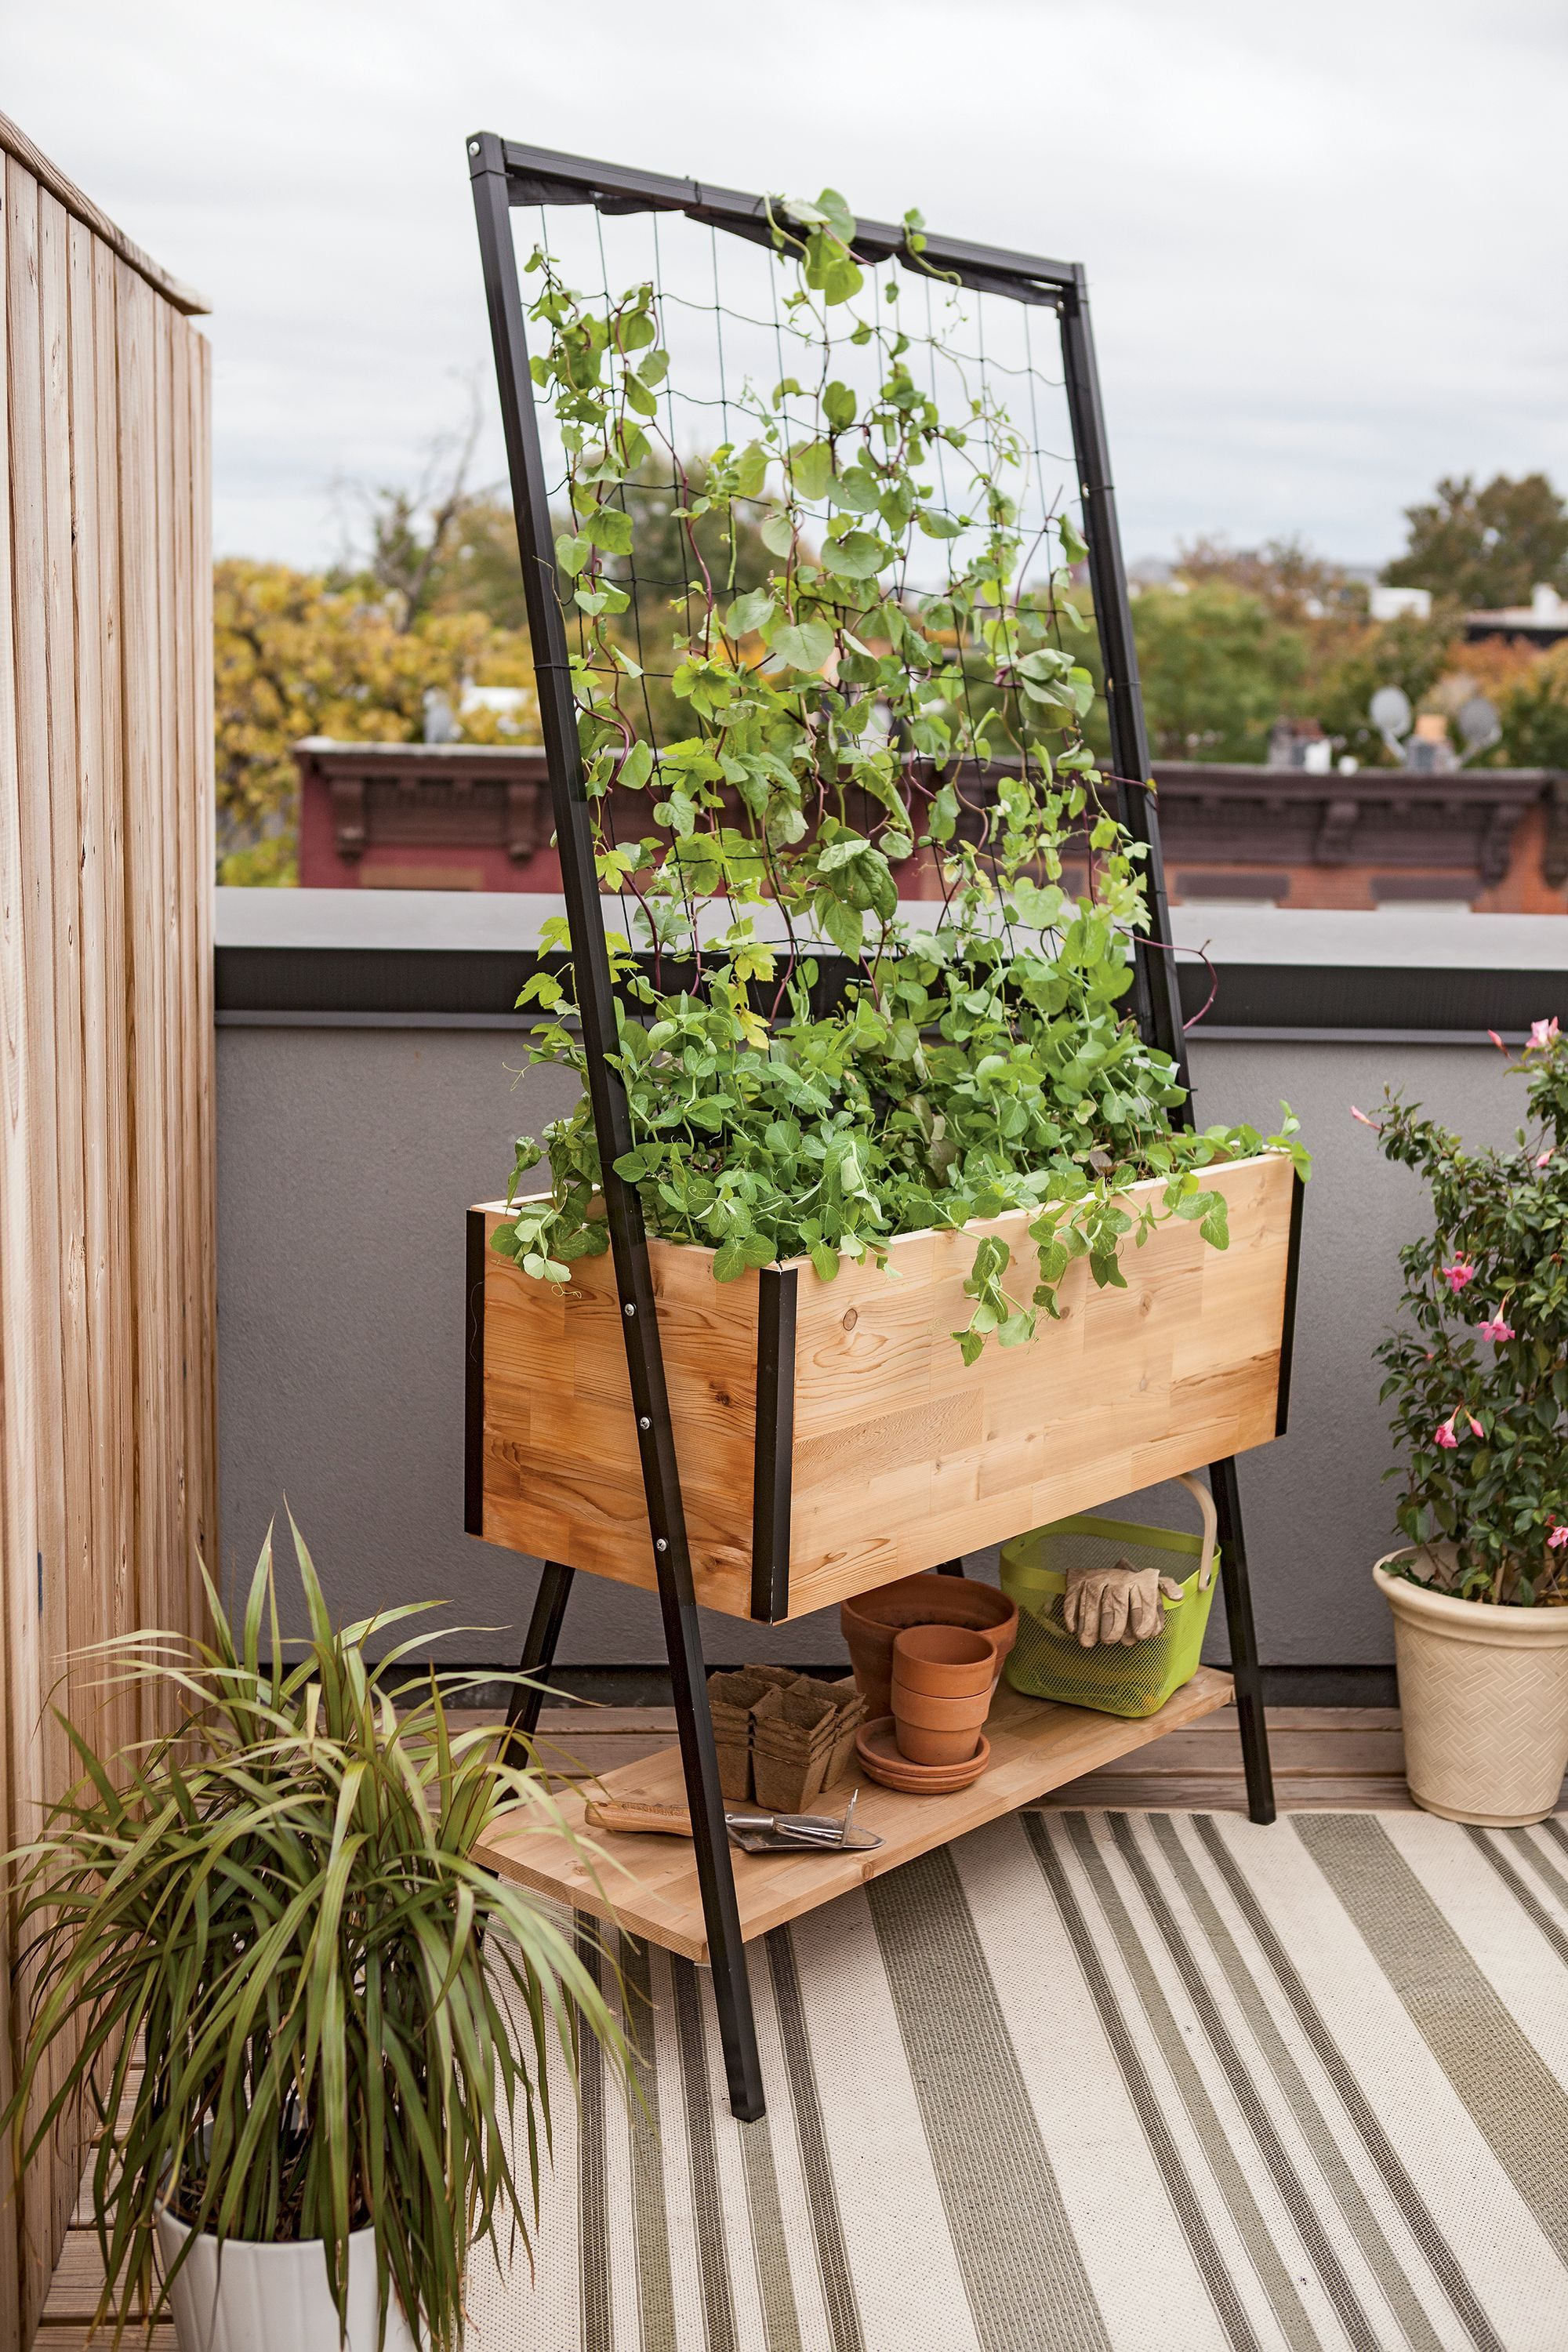 Cedar Planter Box Apex Trellis Planter Elevated Planter Trellis Urban Gardening